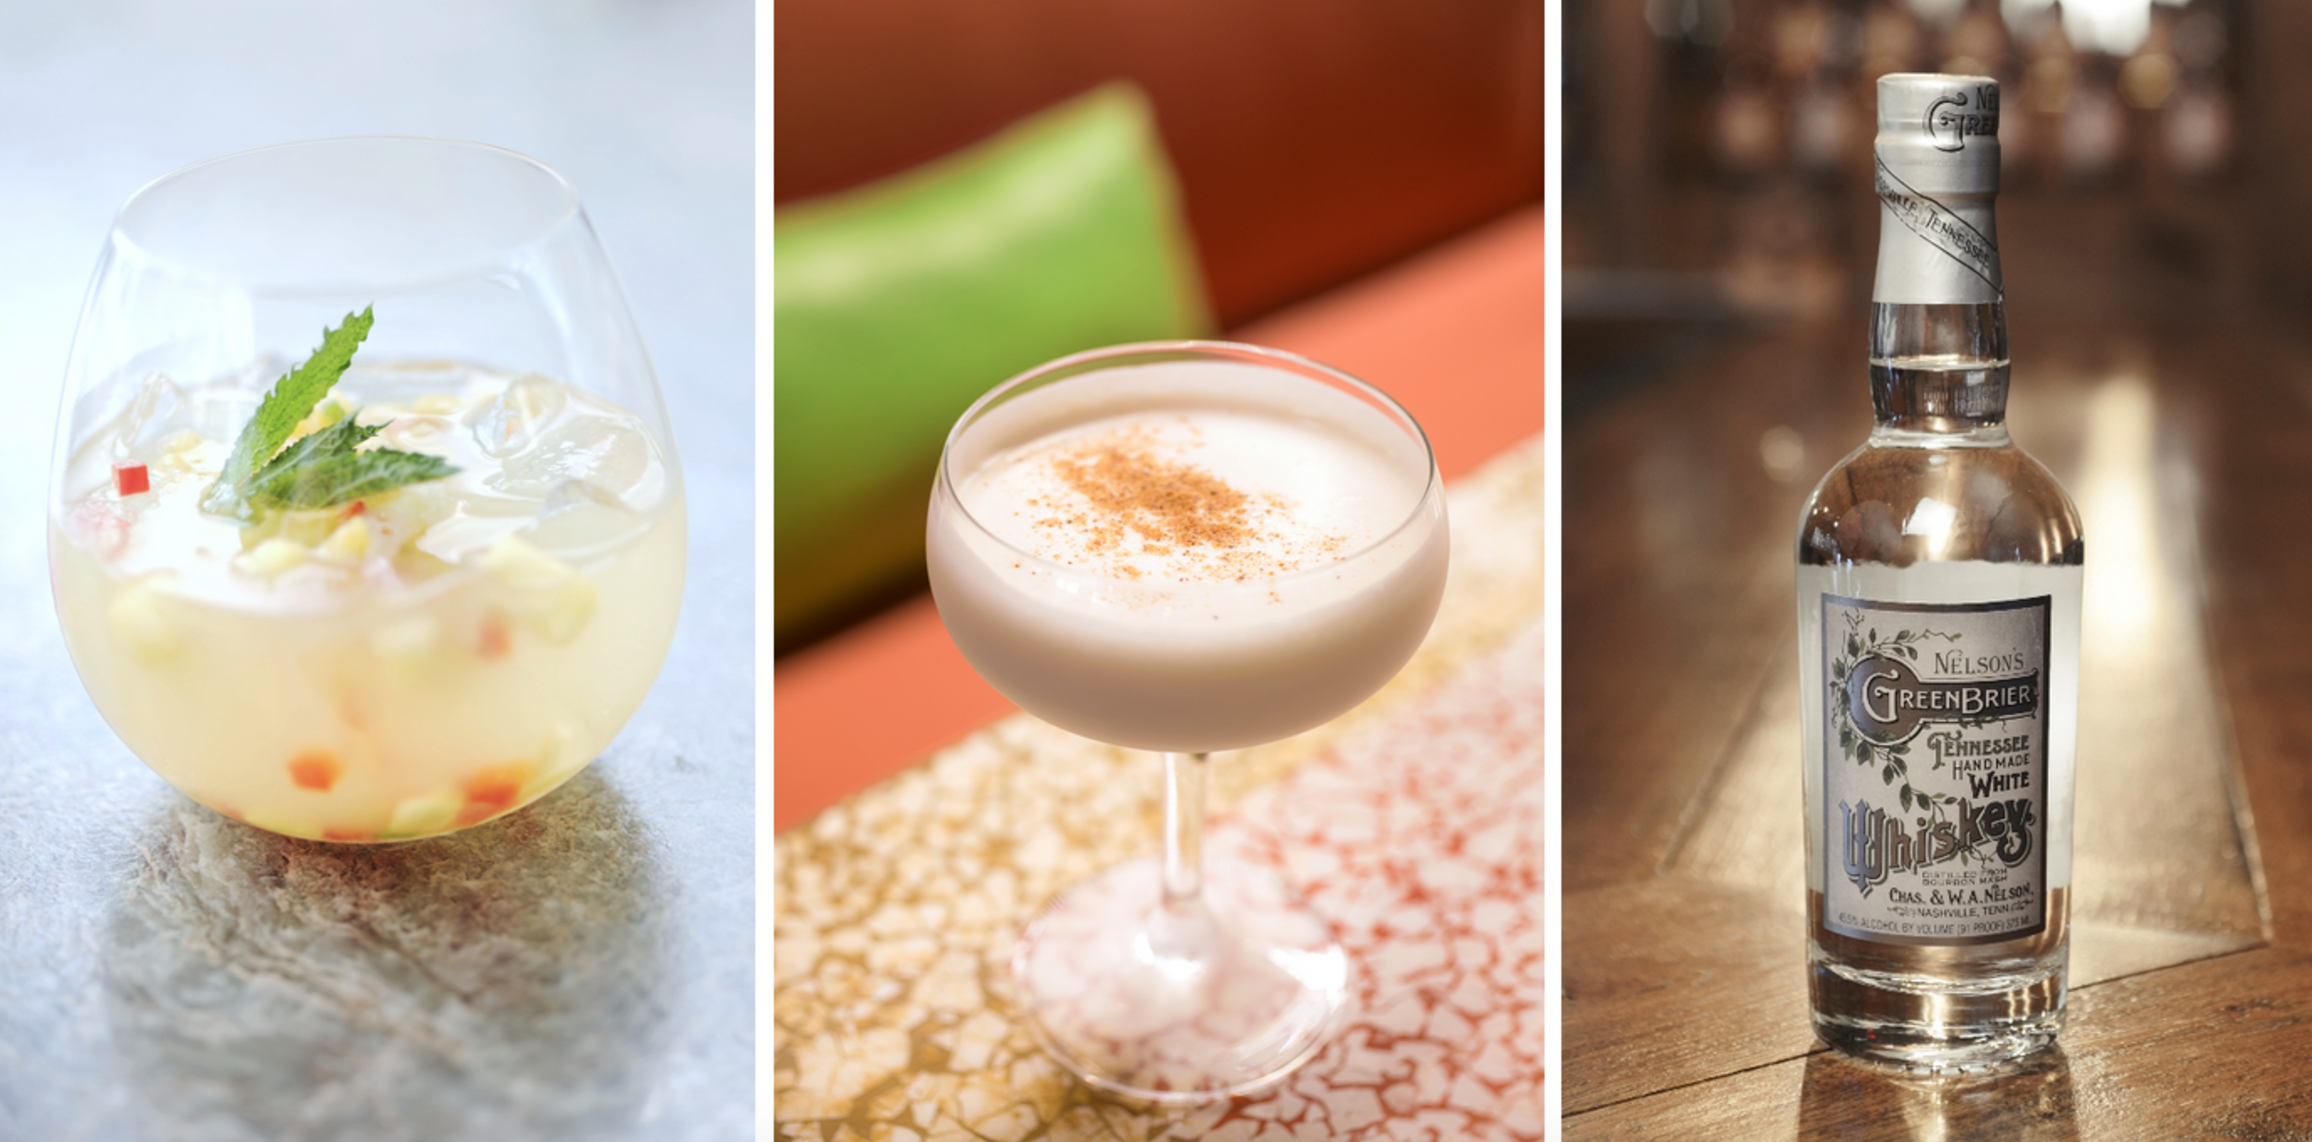 [Left to right: Rising Sun from Urban Heights; Caribbean Milk Punch from Brennan's; Tennessee White Whiskey by Nelson's Green Brier Distillery]